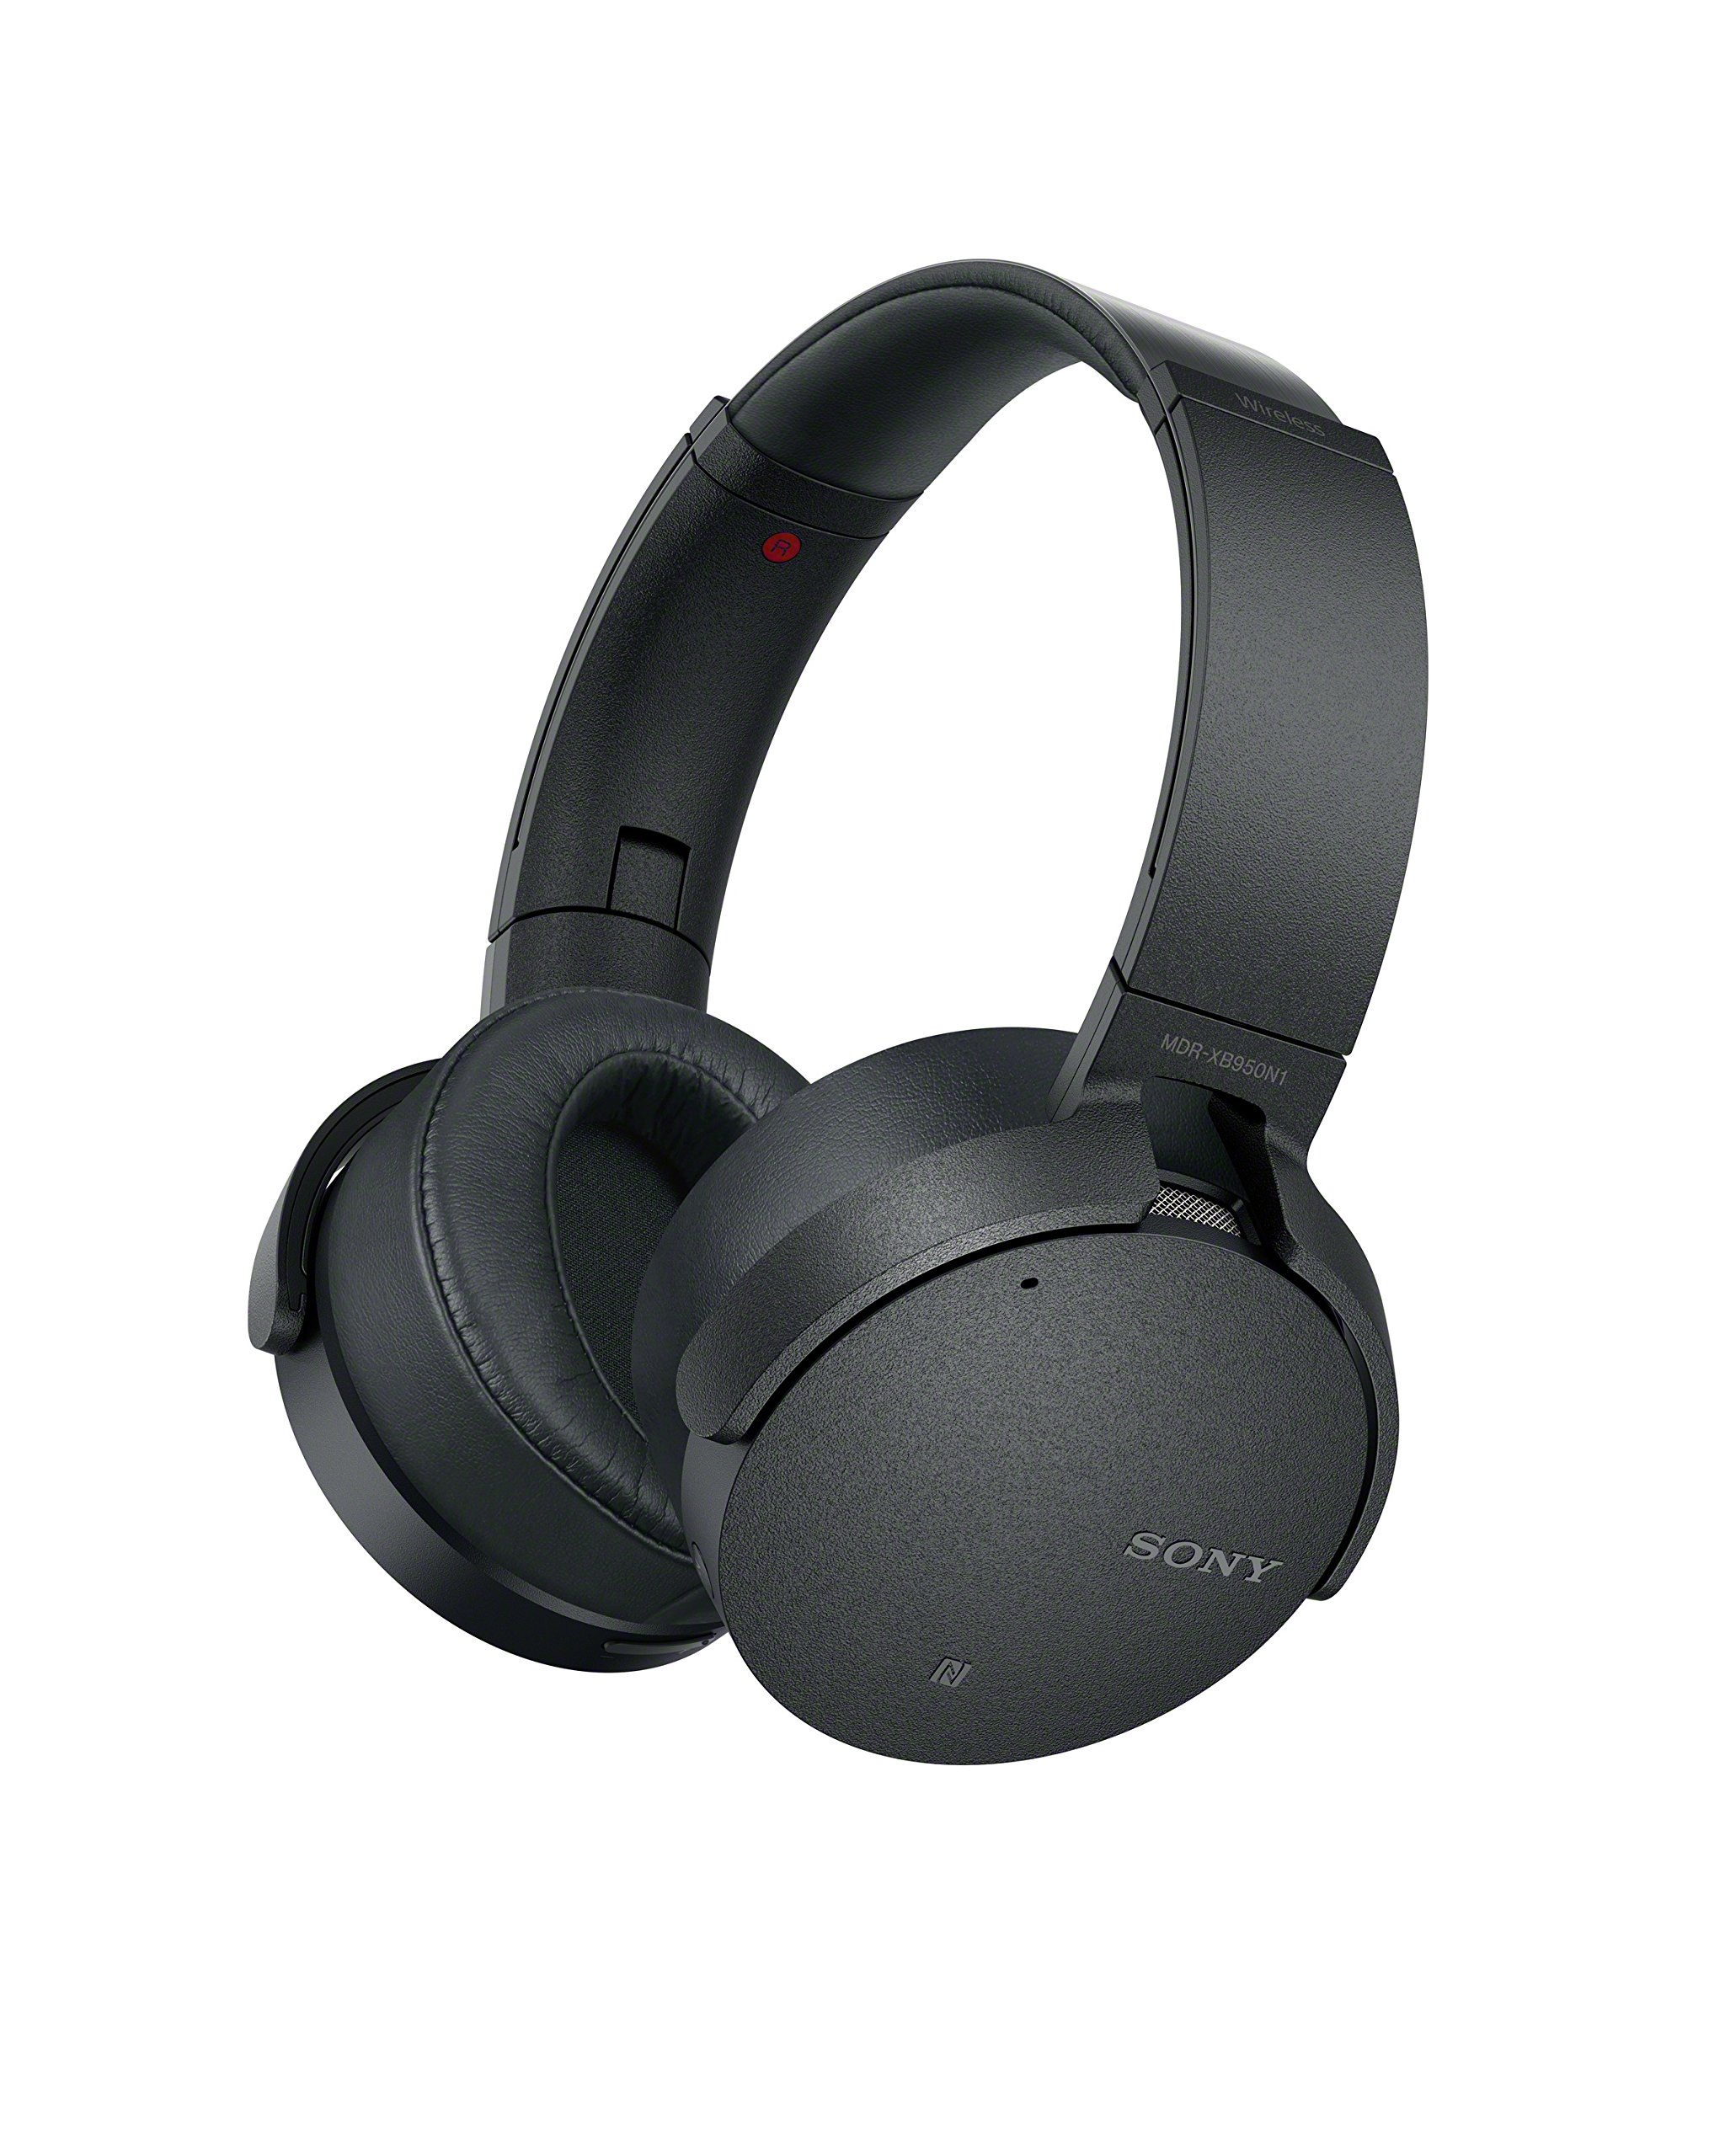 Sony 950N1 Extra Bass Wireless Bluetooth Noise Cancelling Headphones - XB950N1 (Certified Refurbished) by Sony